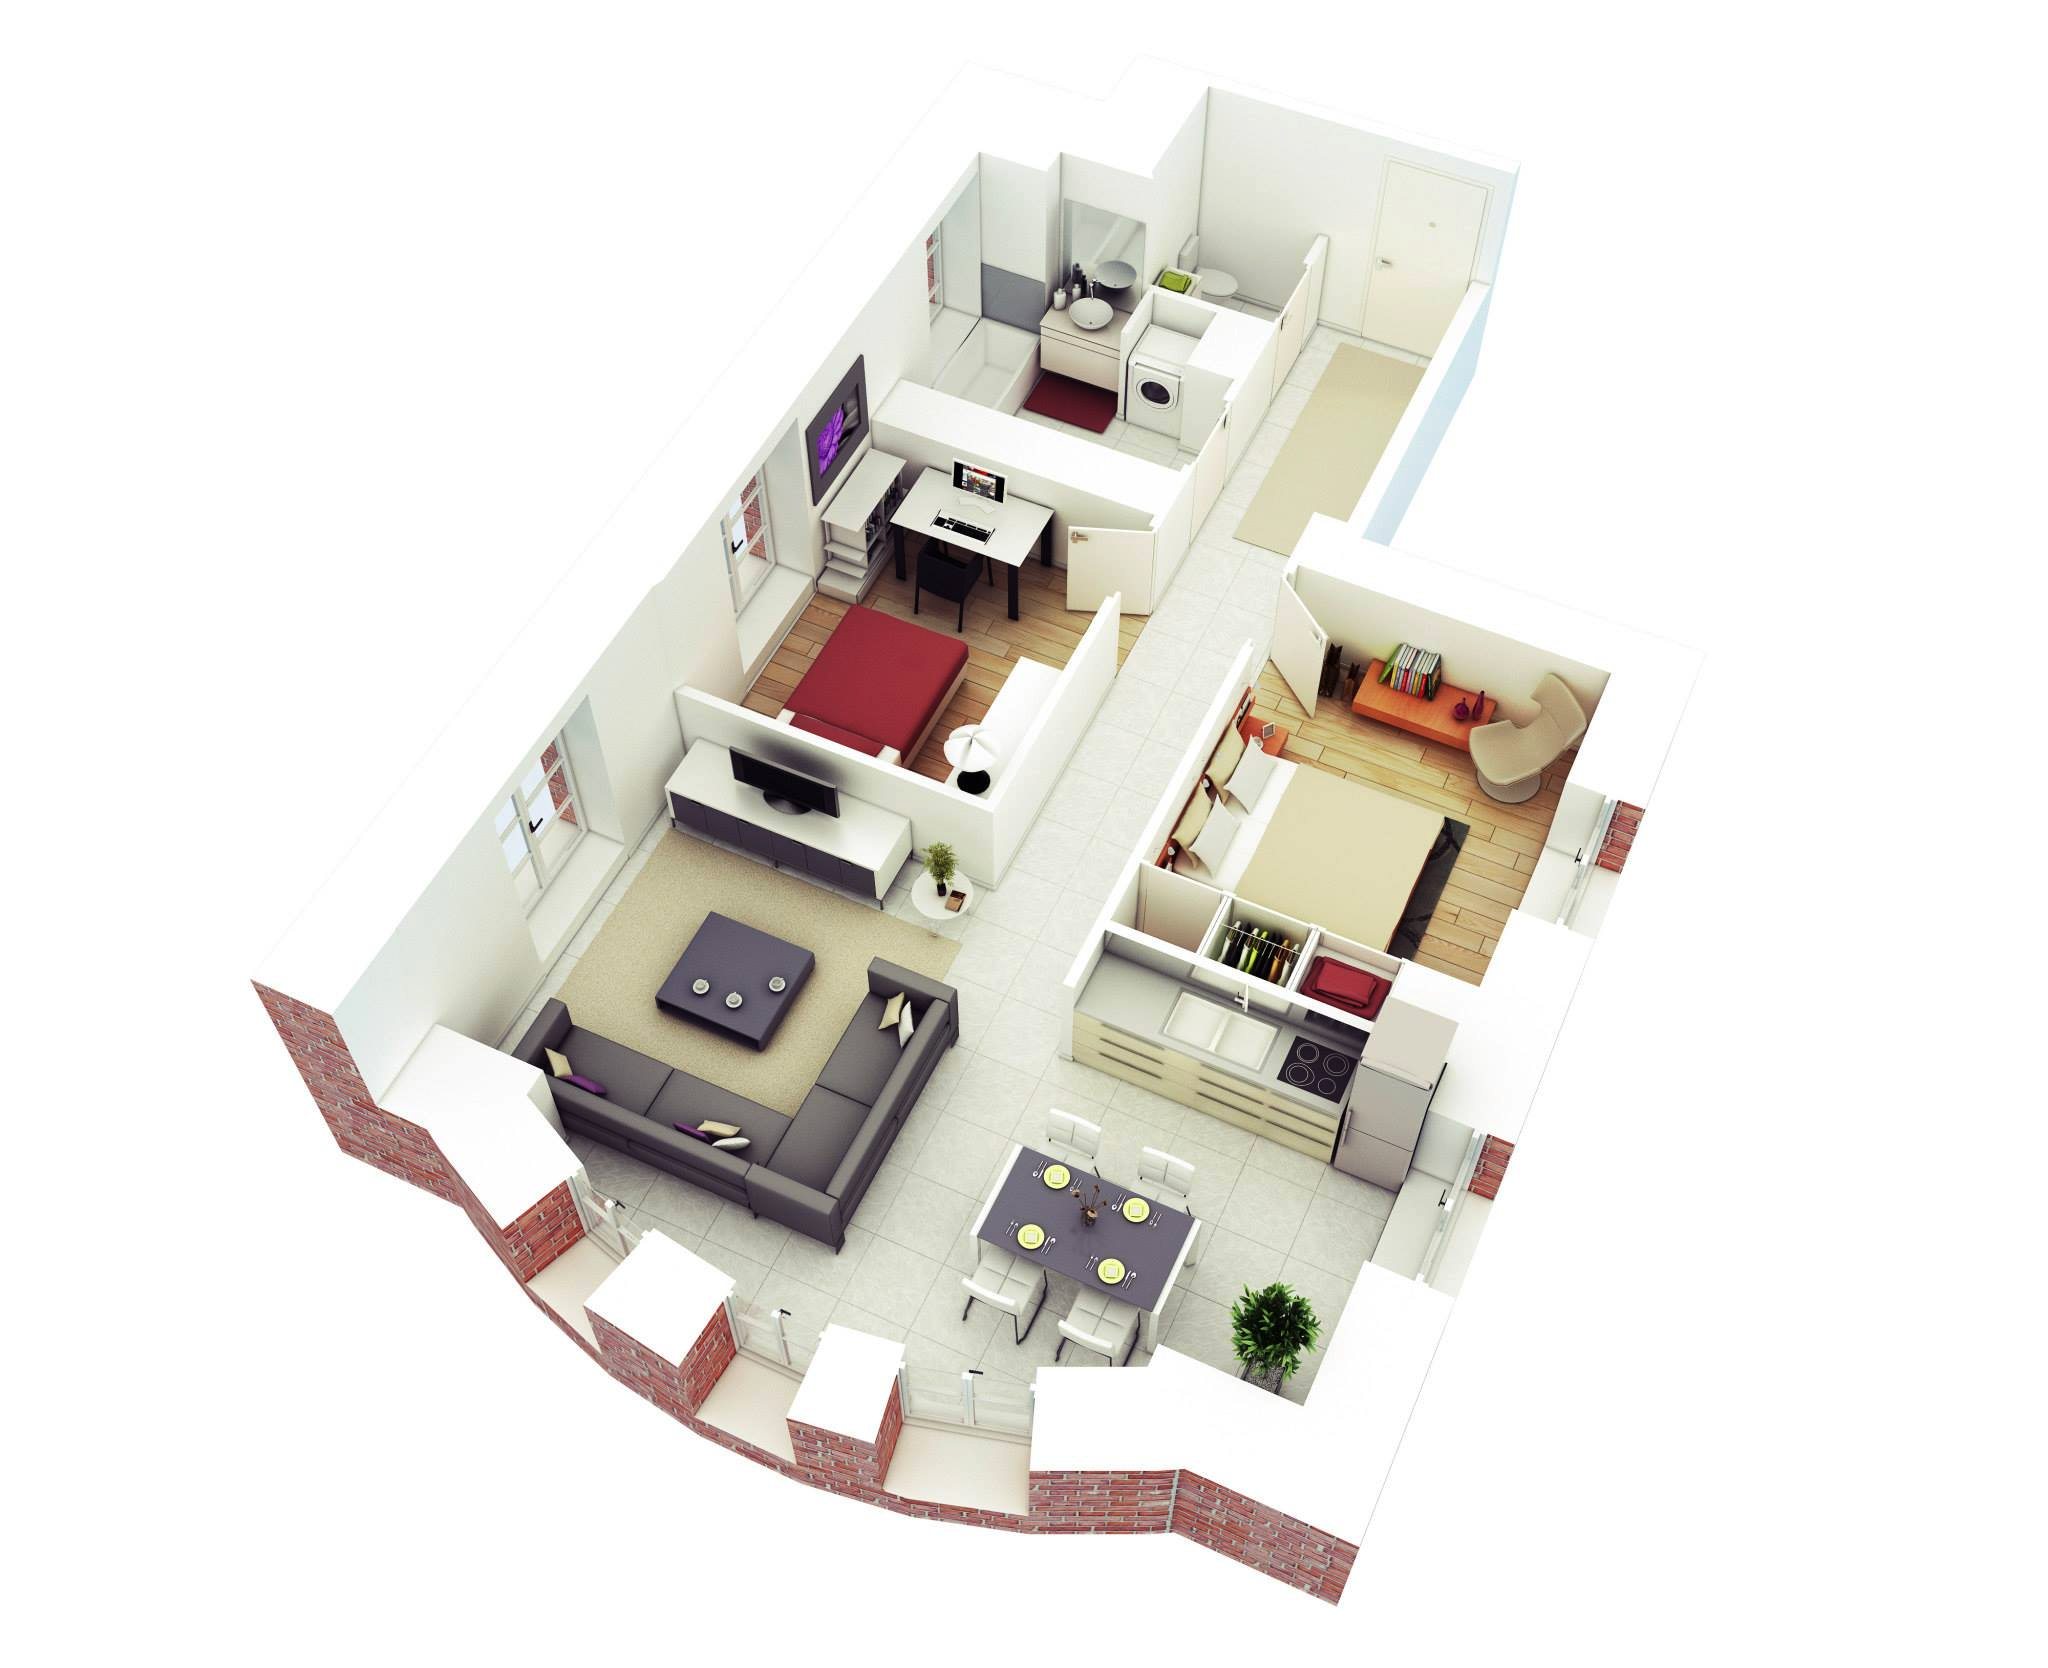 25 more 2 bedroom 3d floor plans - Small Designs 2